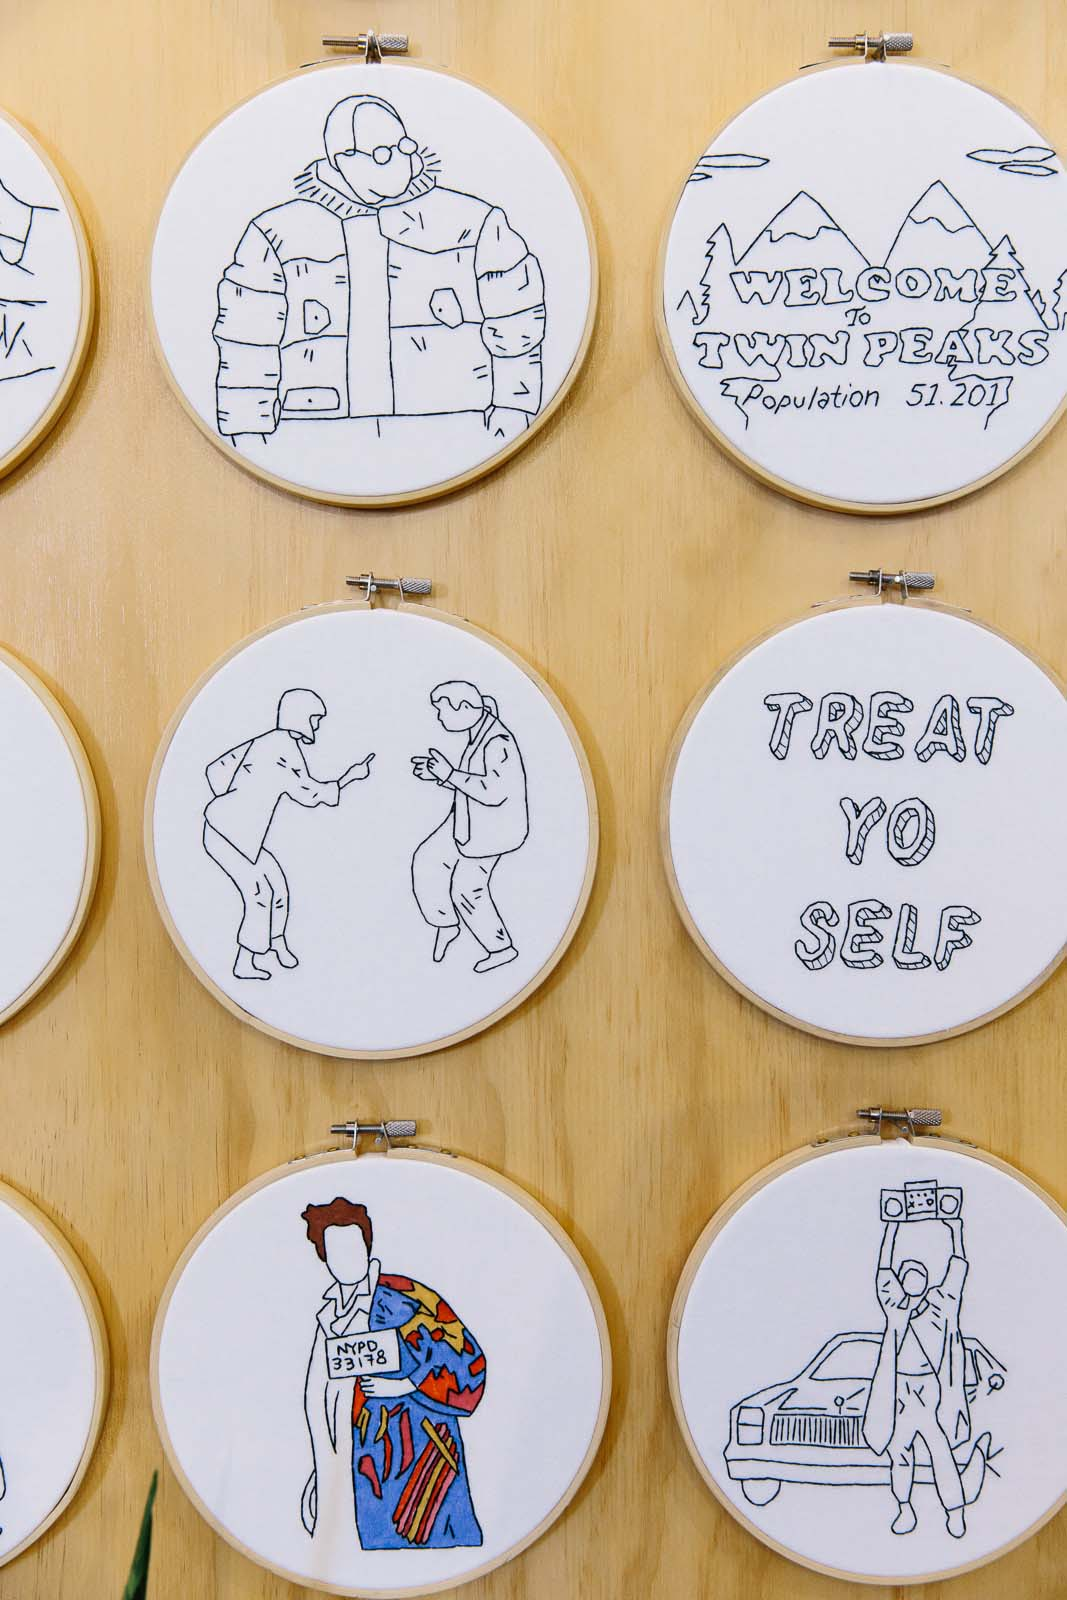 Handmade embroidered artworks with Seinfeld references and quirky illustrations